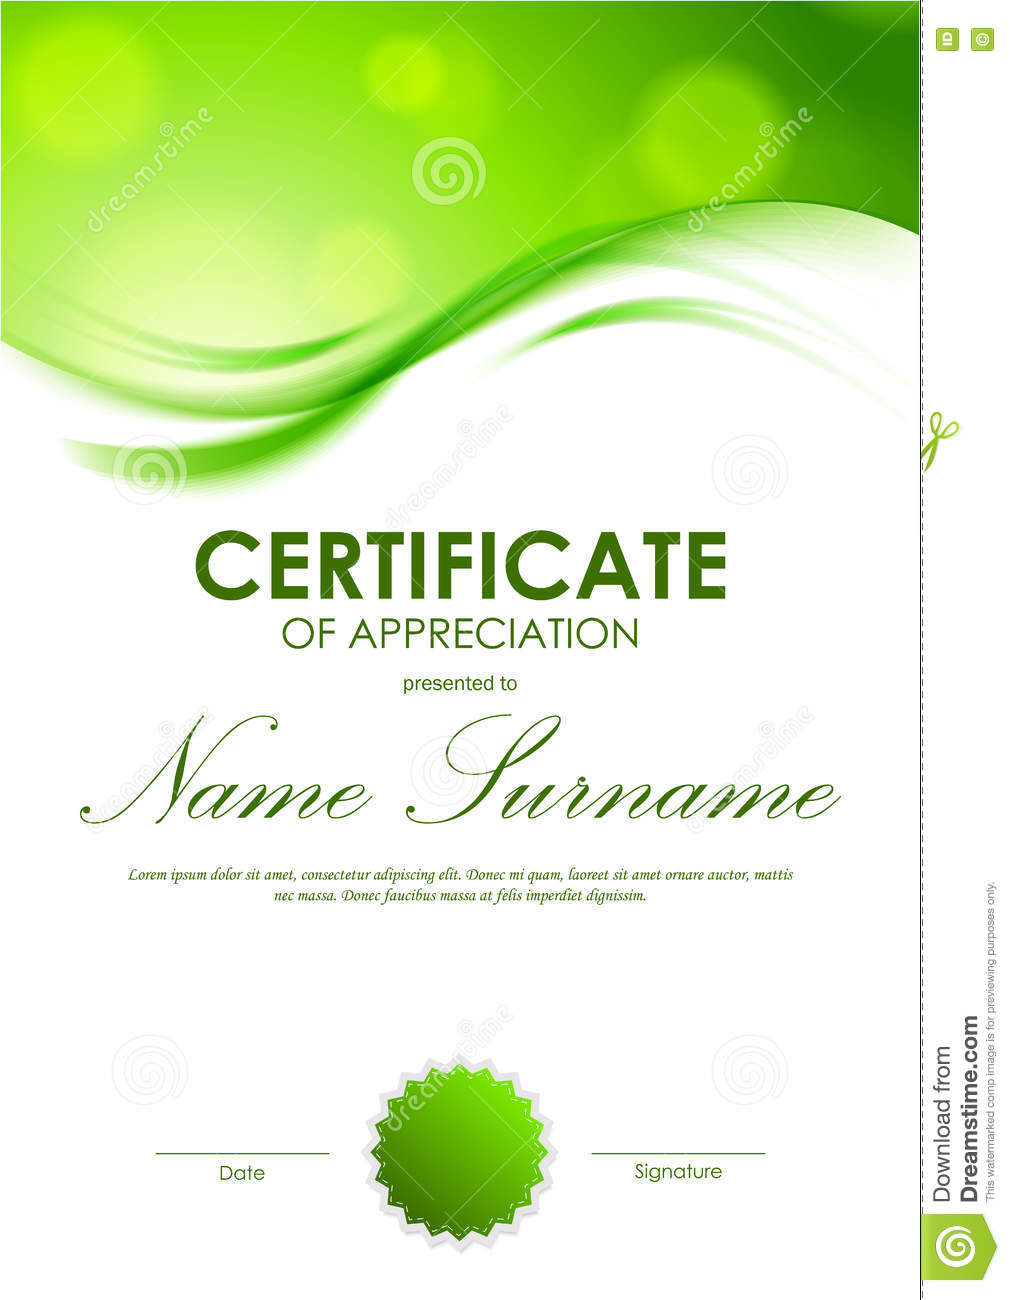 Certificate of appreciation template stock vector illustration certificate of appreciation template yelopaper Choice Image